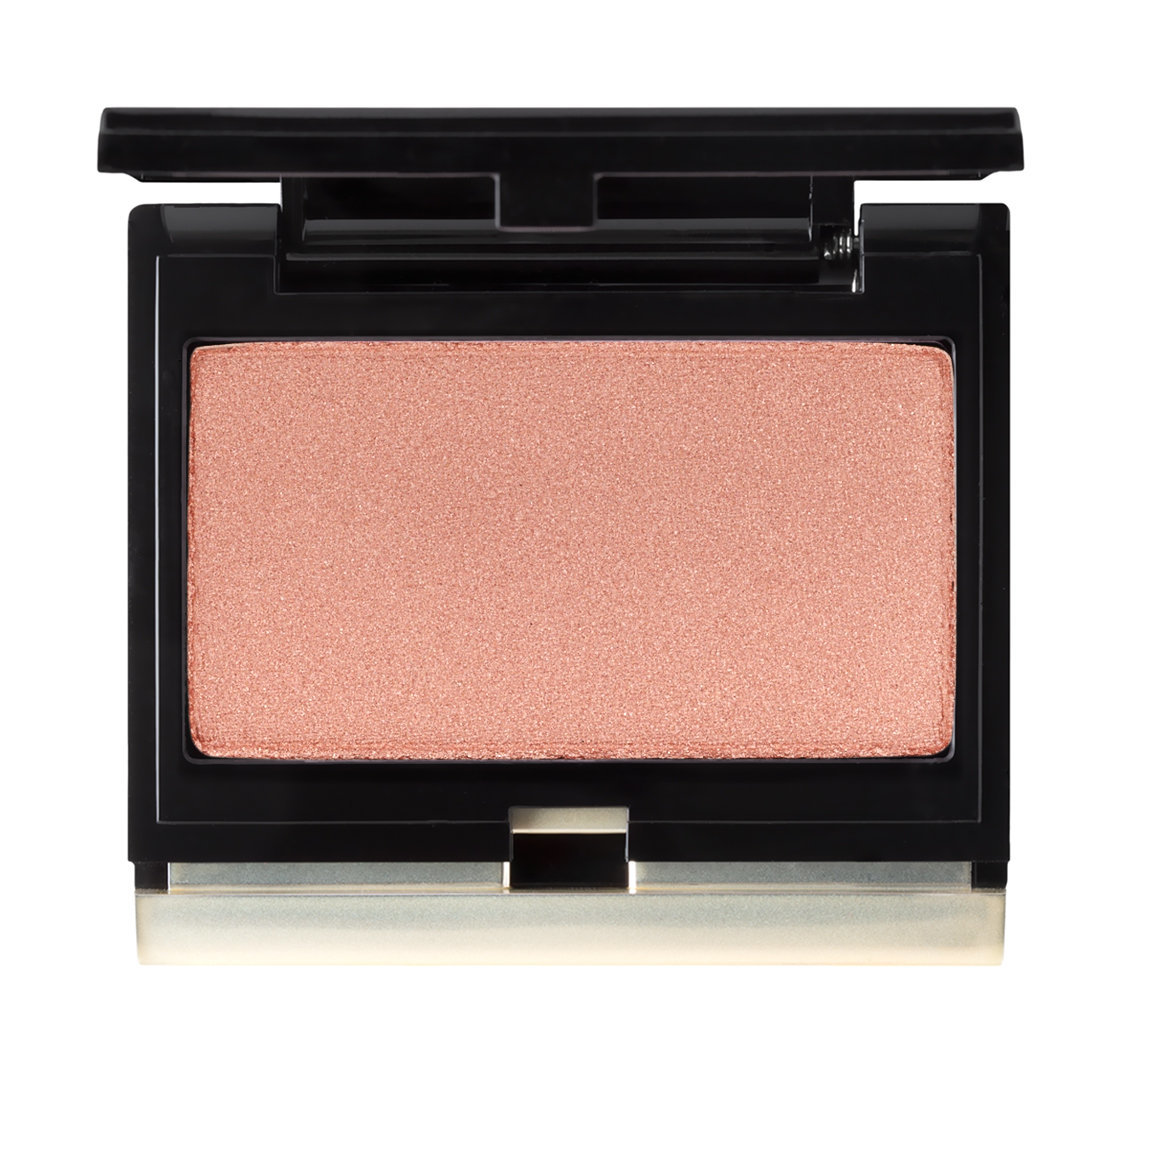 Kevyn Aucoin The Celestial Powder Starlight product swatch.